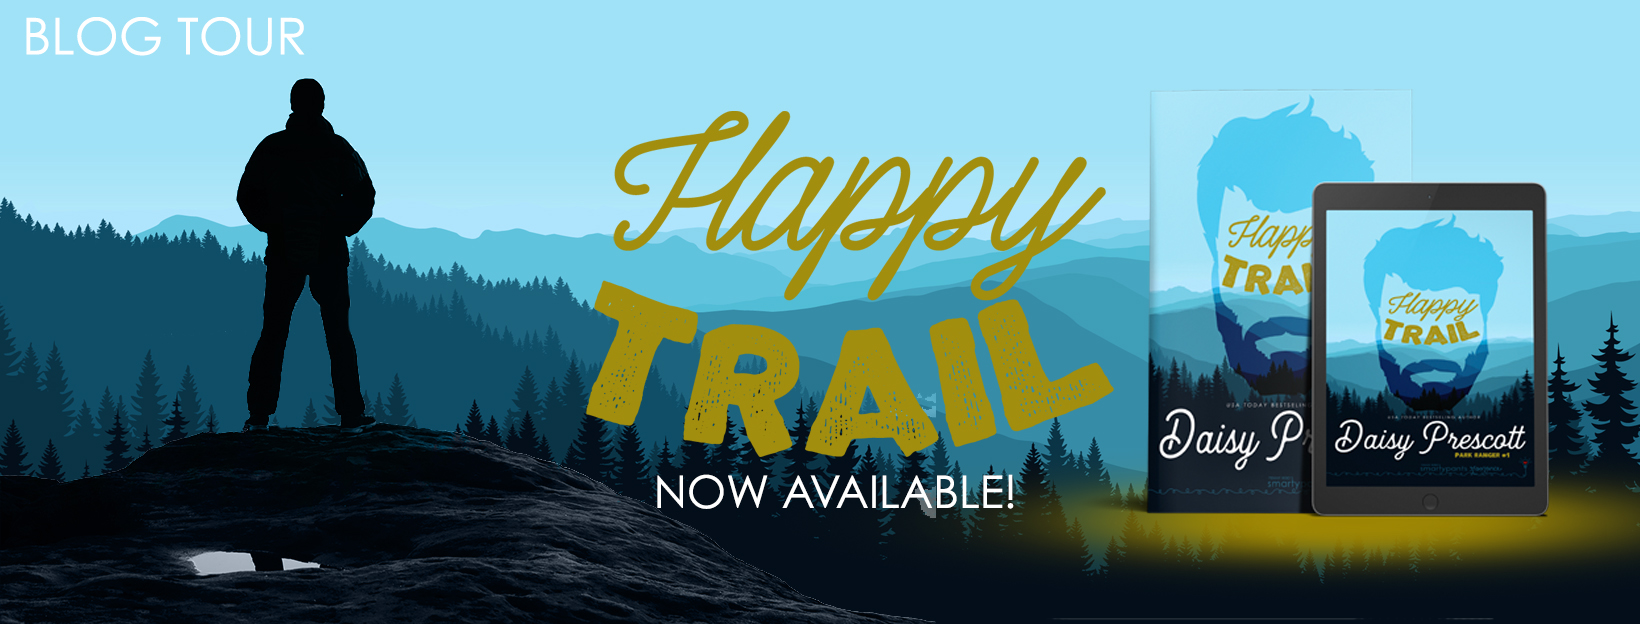 Blog Tour Review with Excerpt:  Happy Trail (Park Ranger #1) by Daisy Prescott